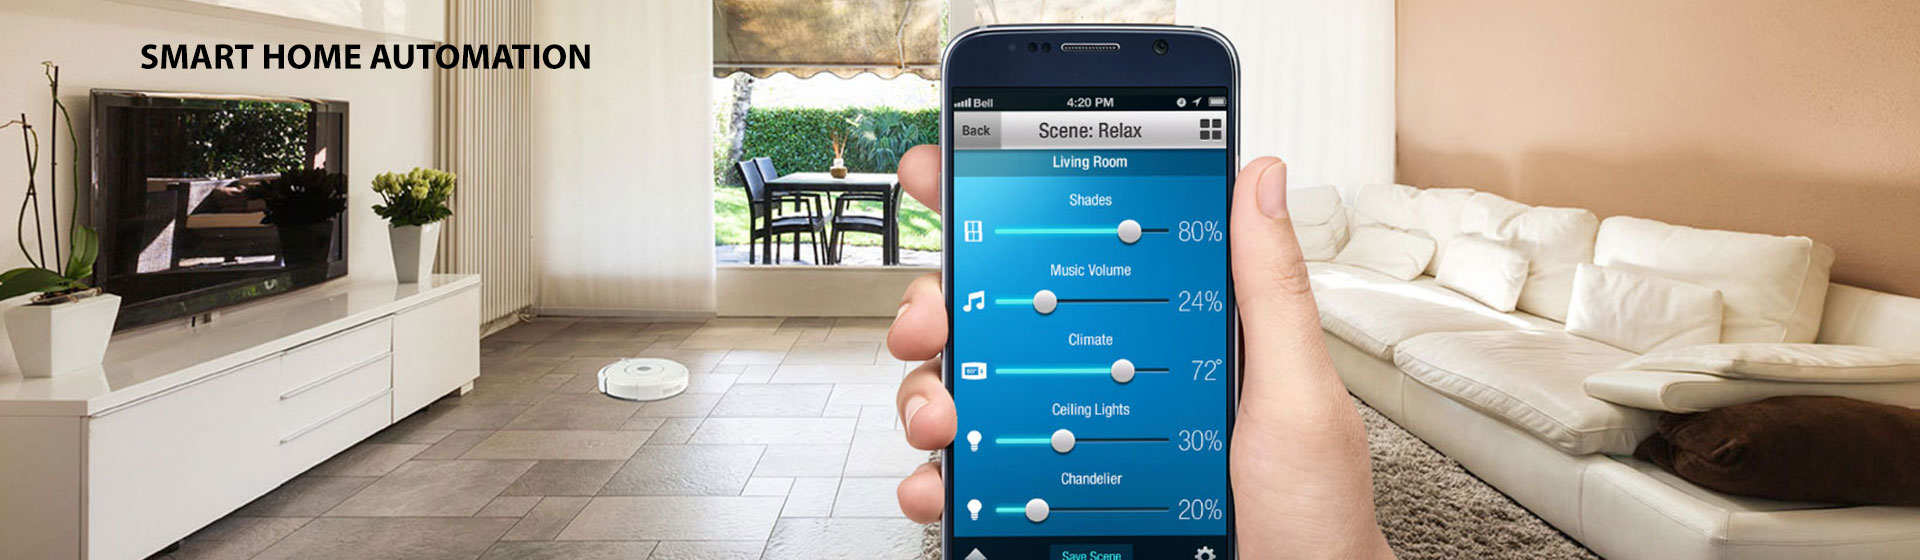 low cost home automation solution